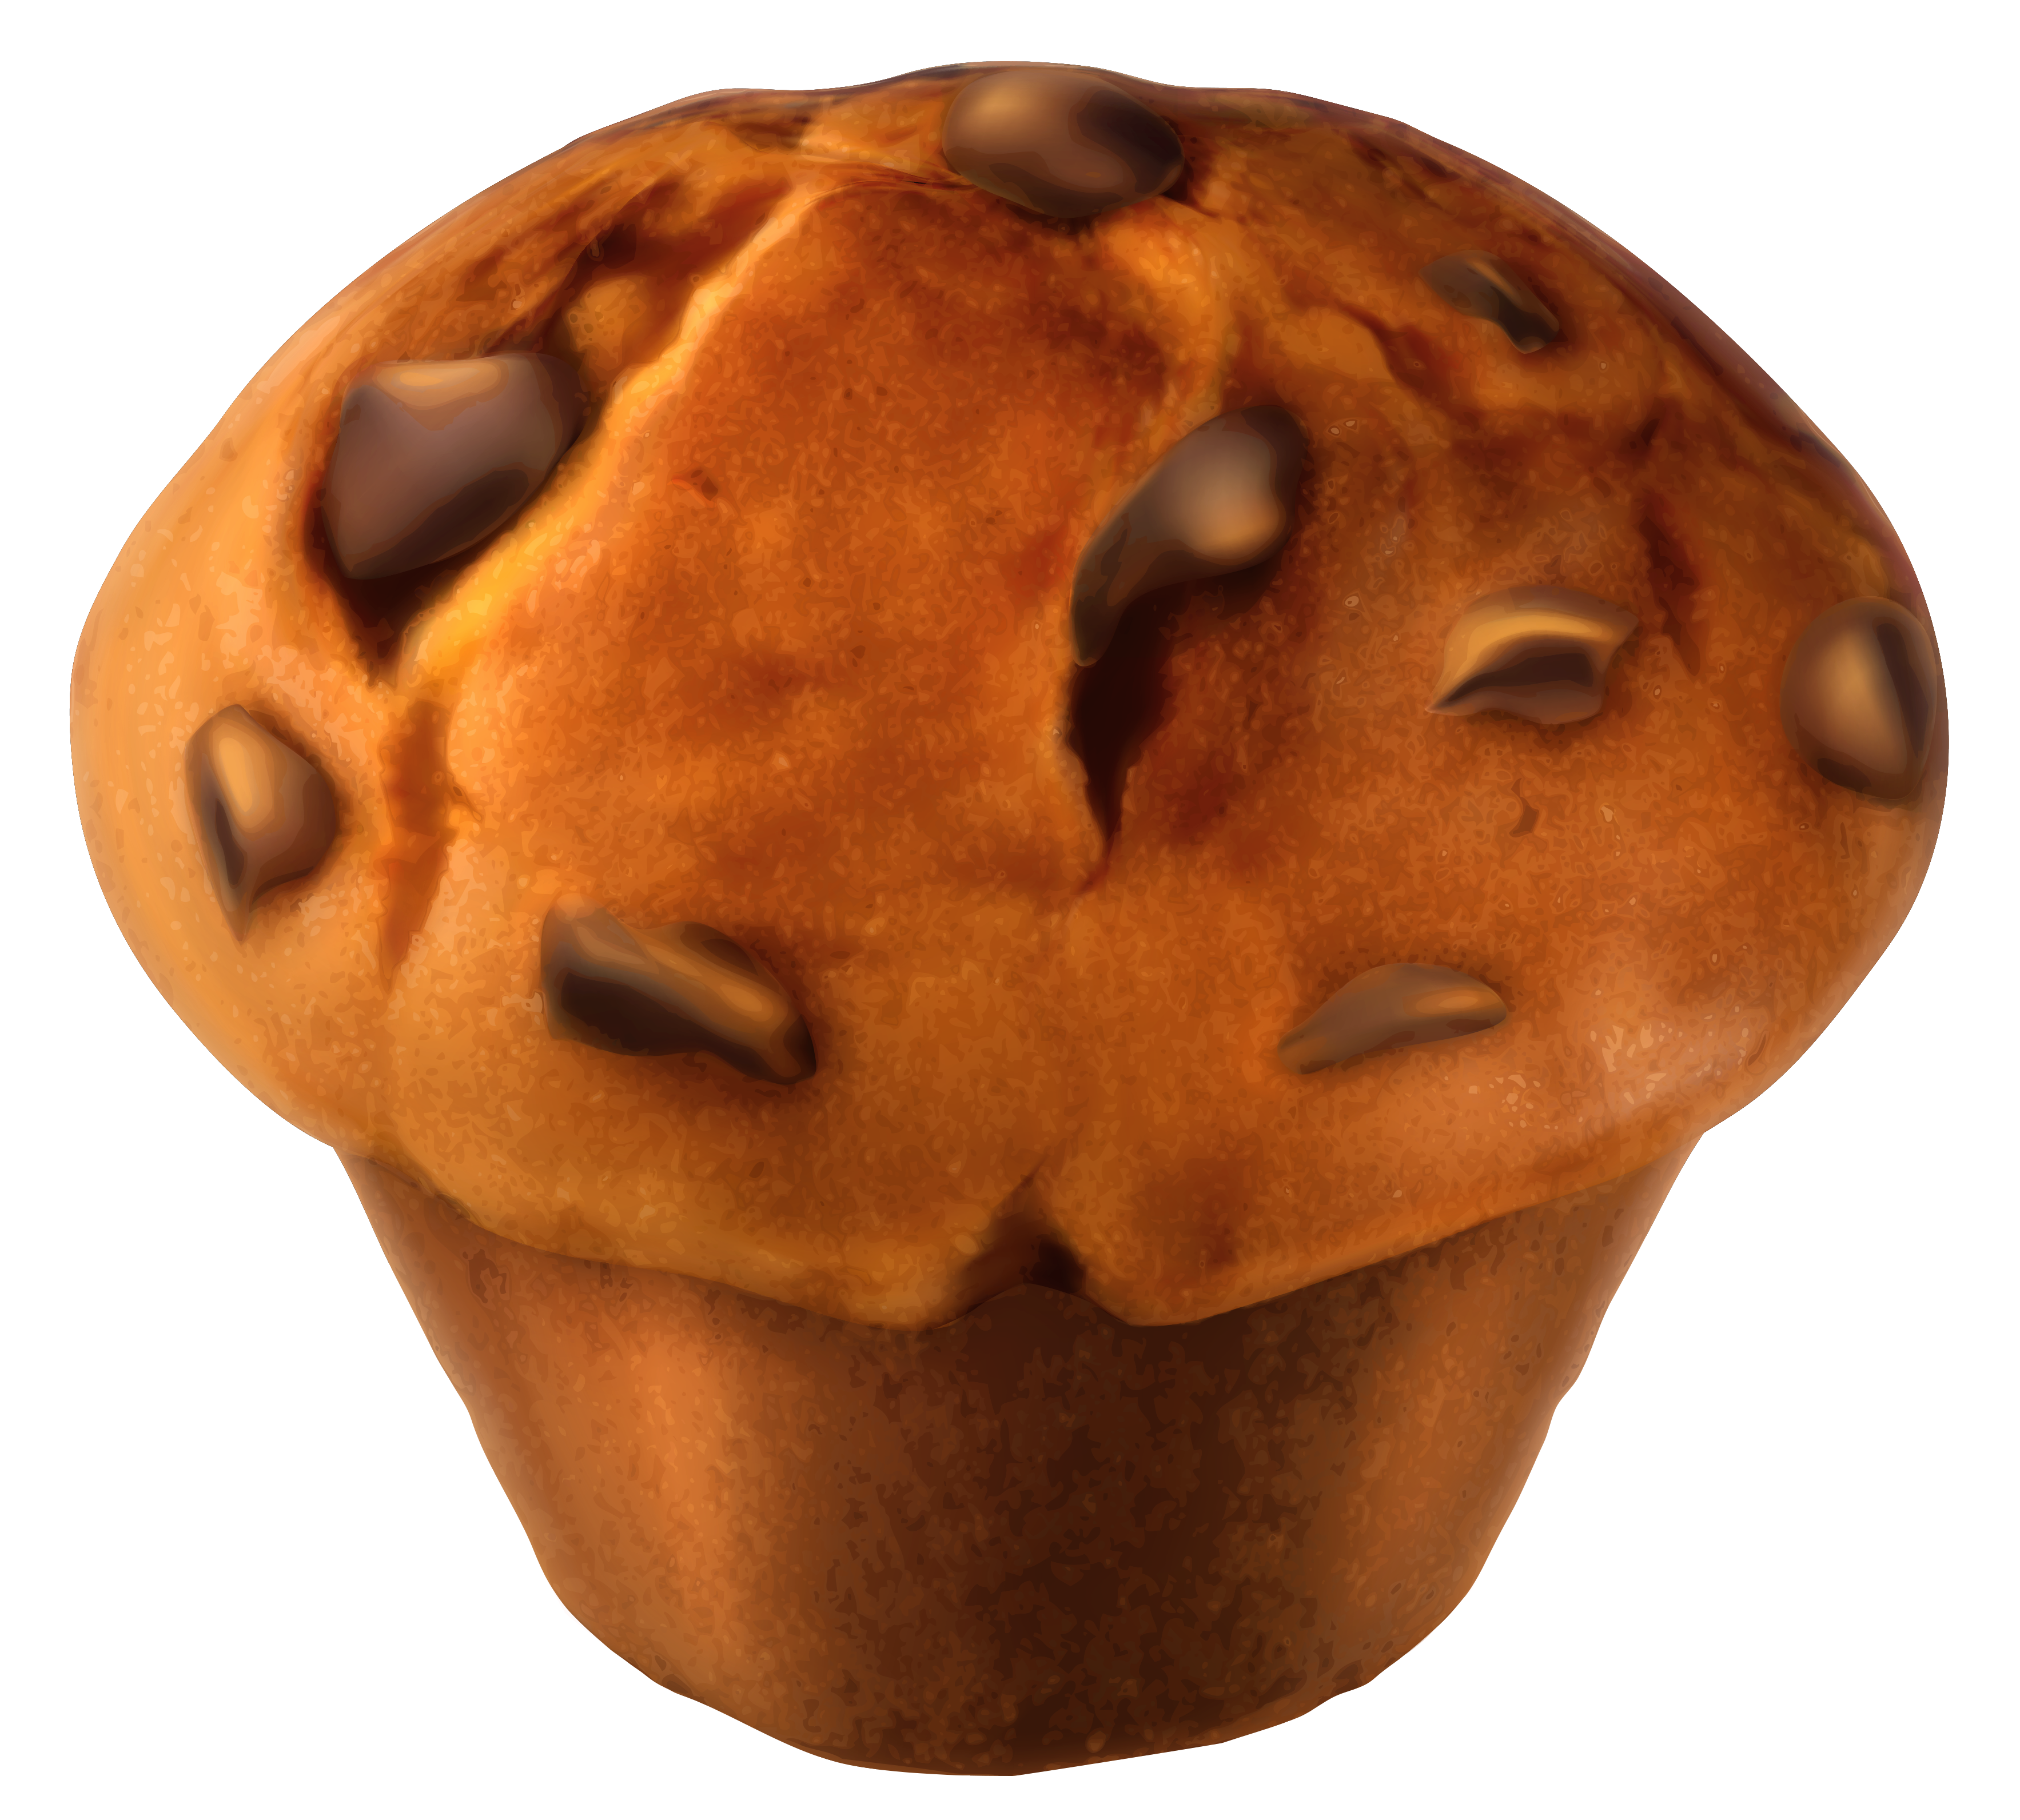 Chocolate chips clipart png. Muffin picture gallery yopriceville